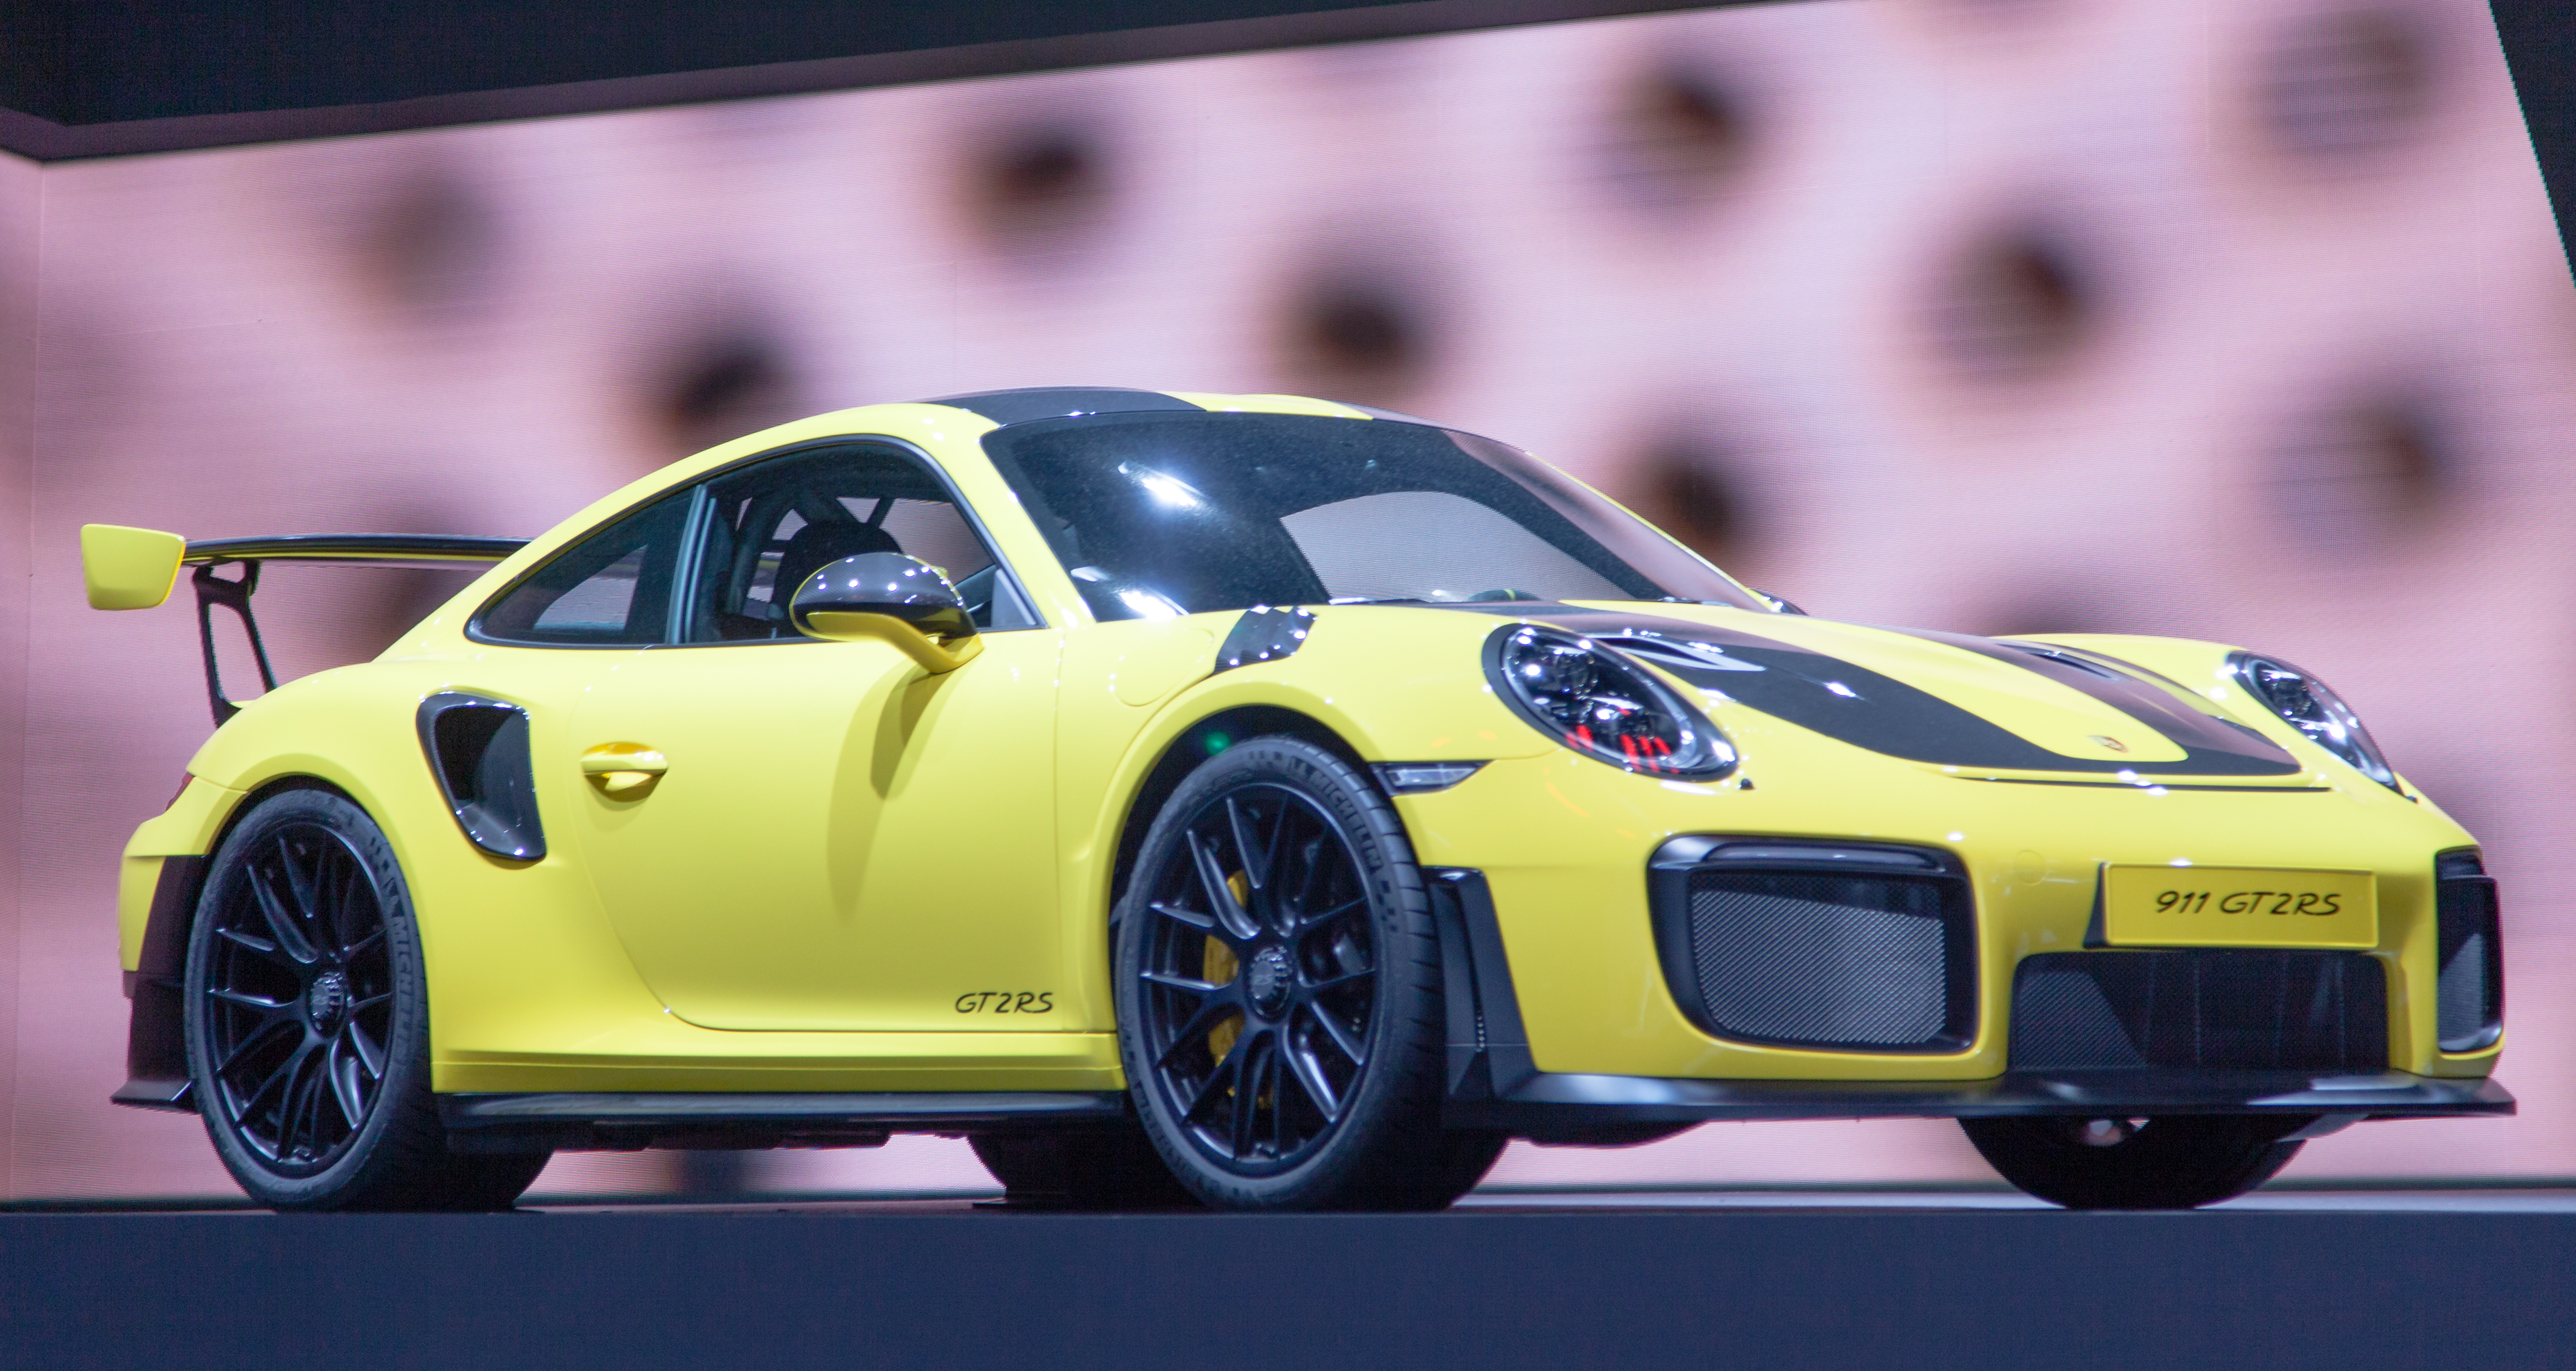 File Porsche 911 Gt2rs Yellow Img 0684 Jpg Wikimedia Commons